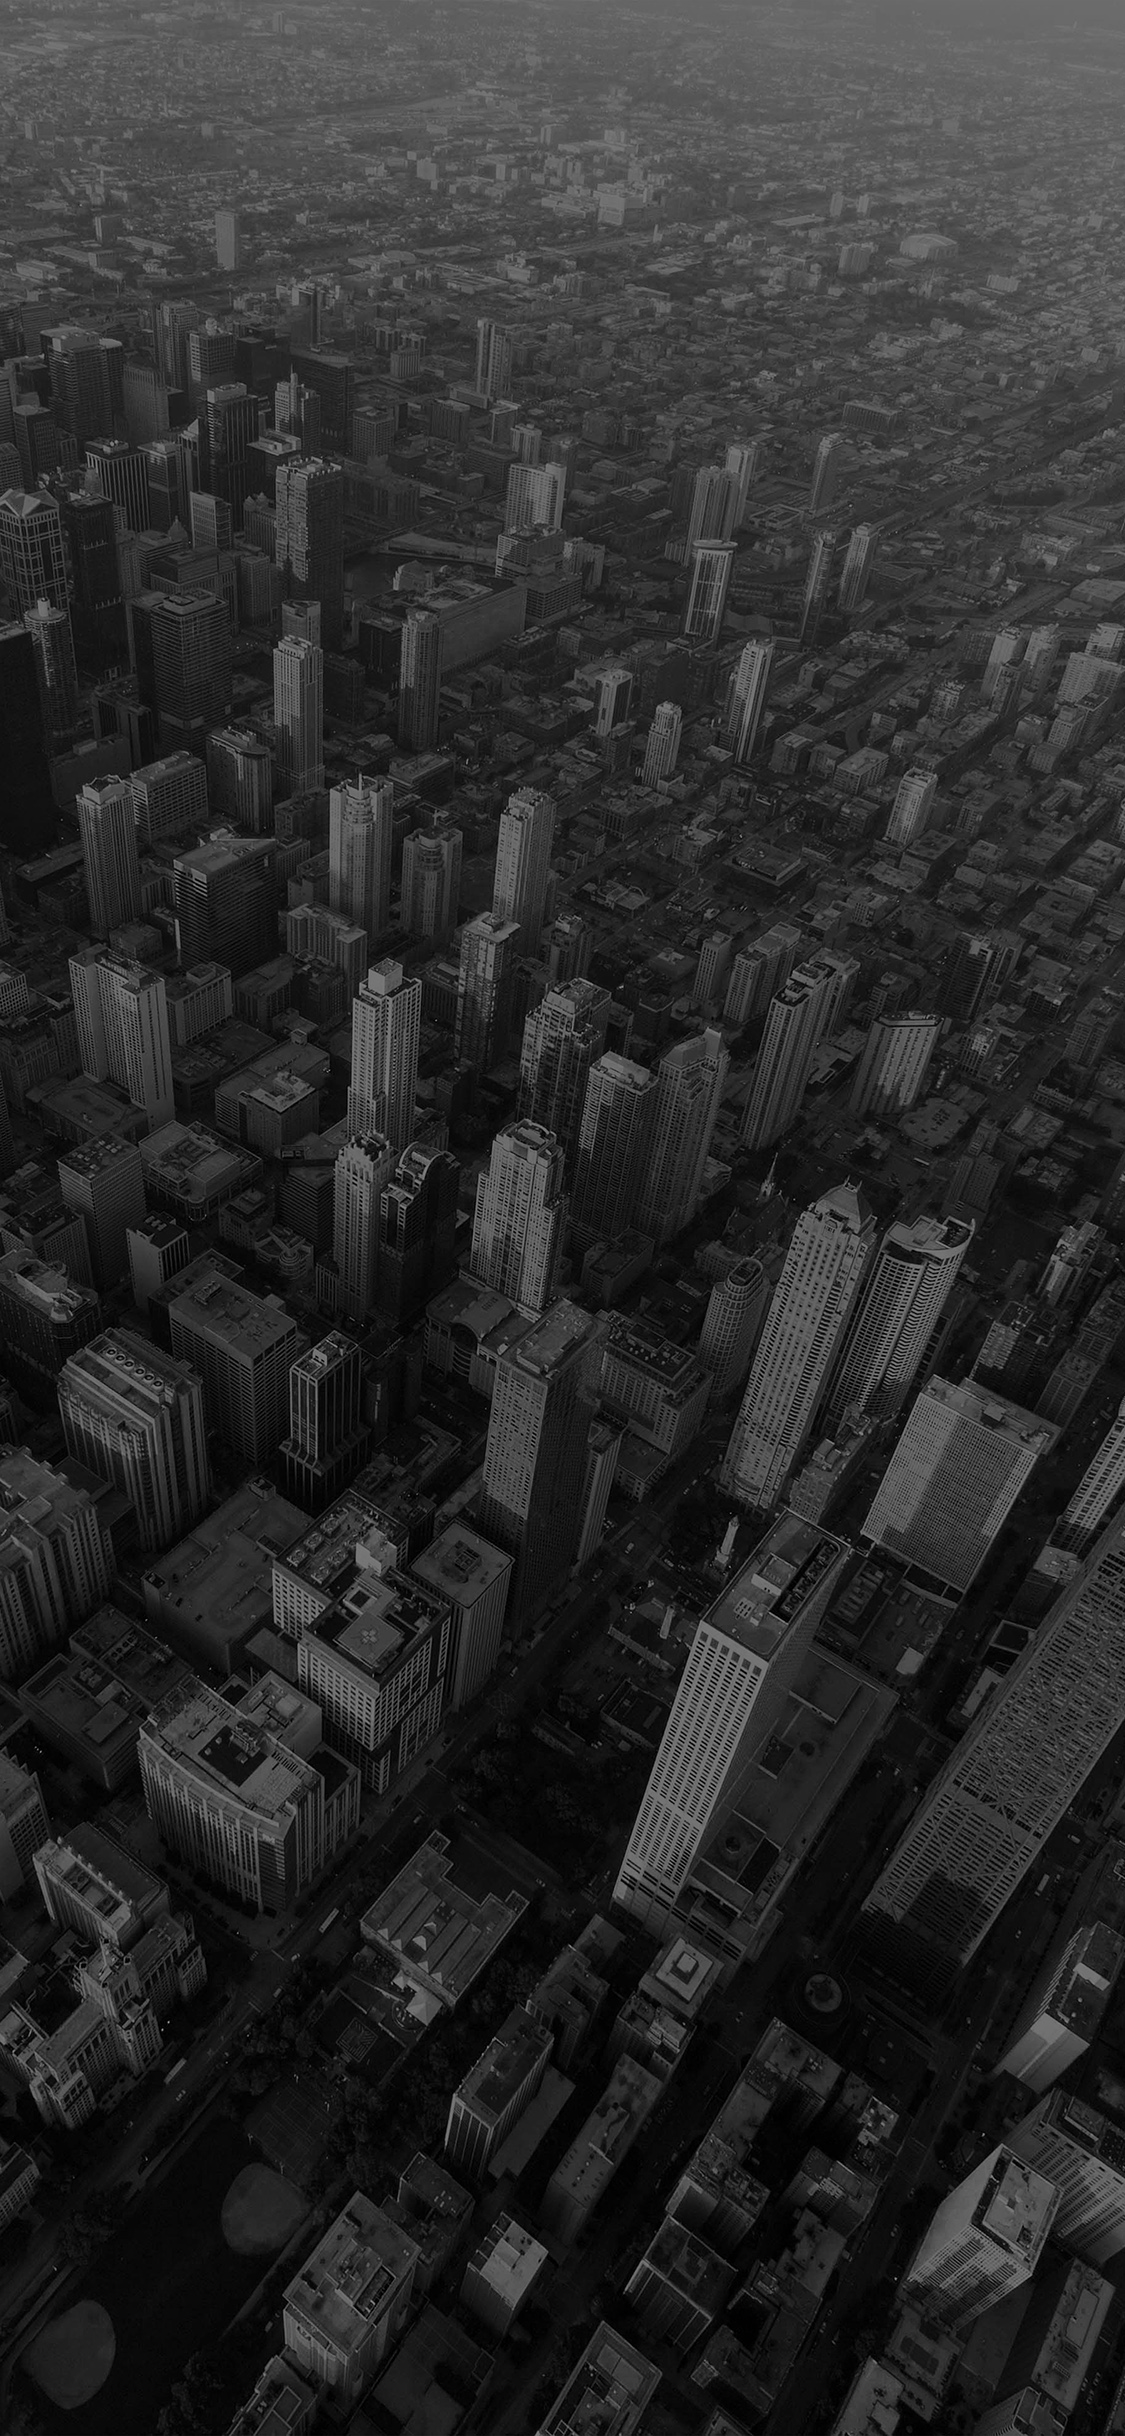 iPhoneXpapers.com-Apple-iPhone-wallpaper-na57-chicago-city-skyview-building-architecture-blocks-dark-bw